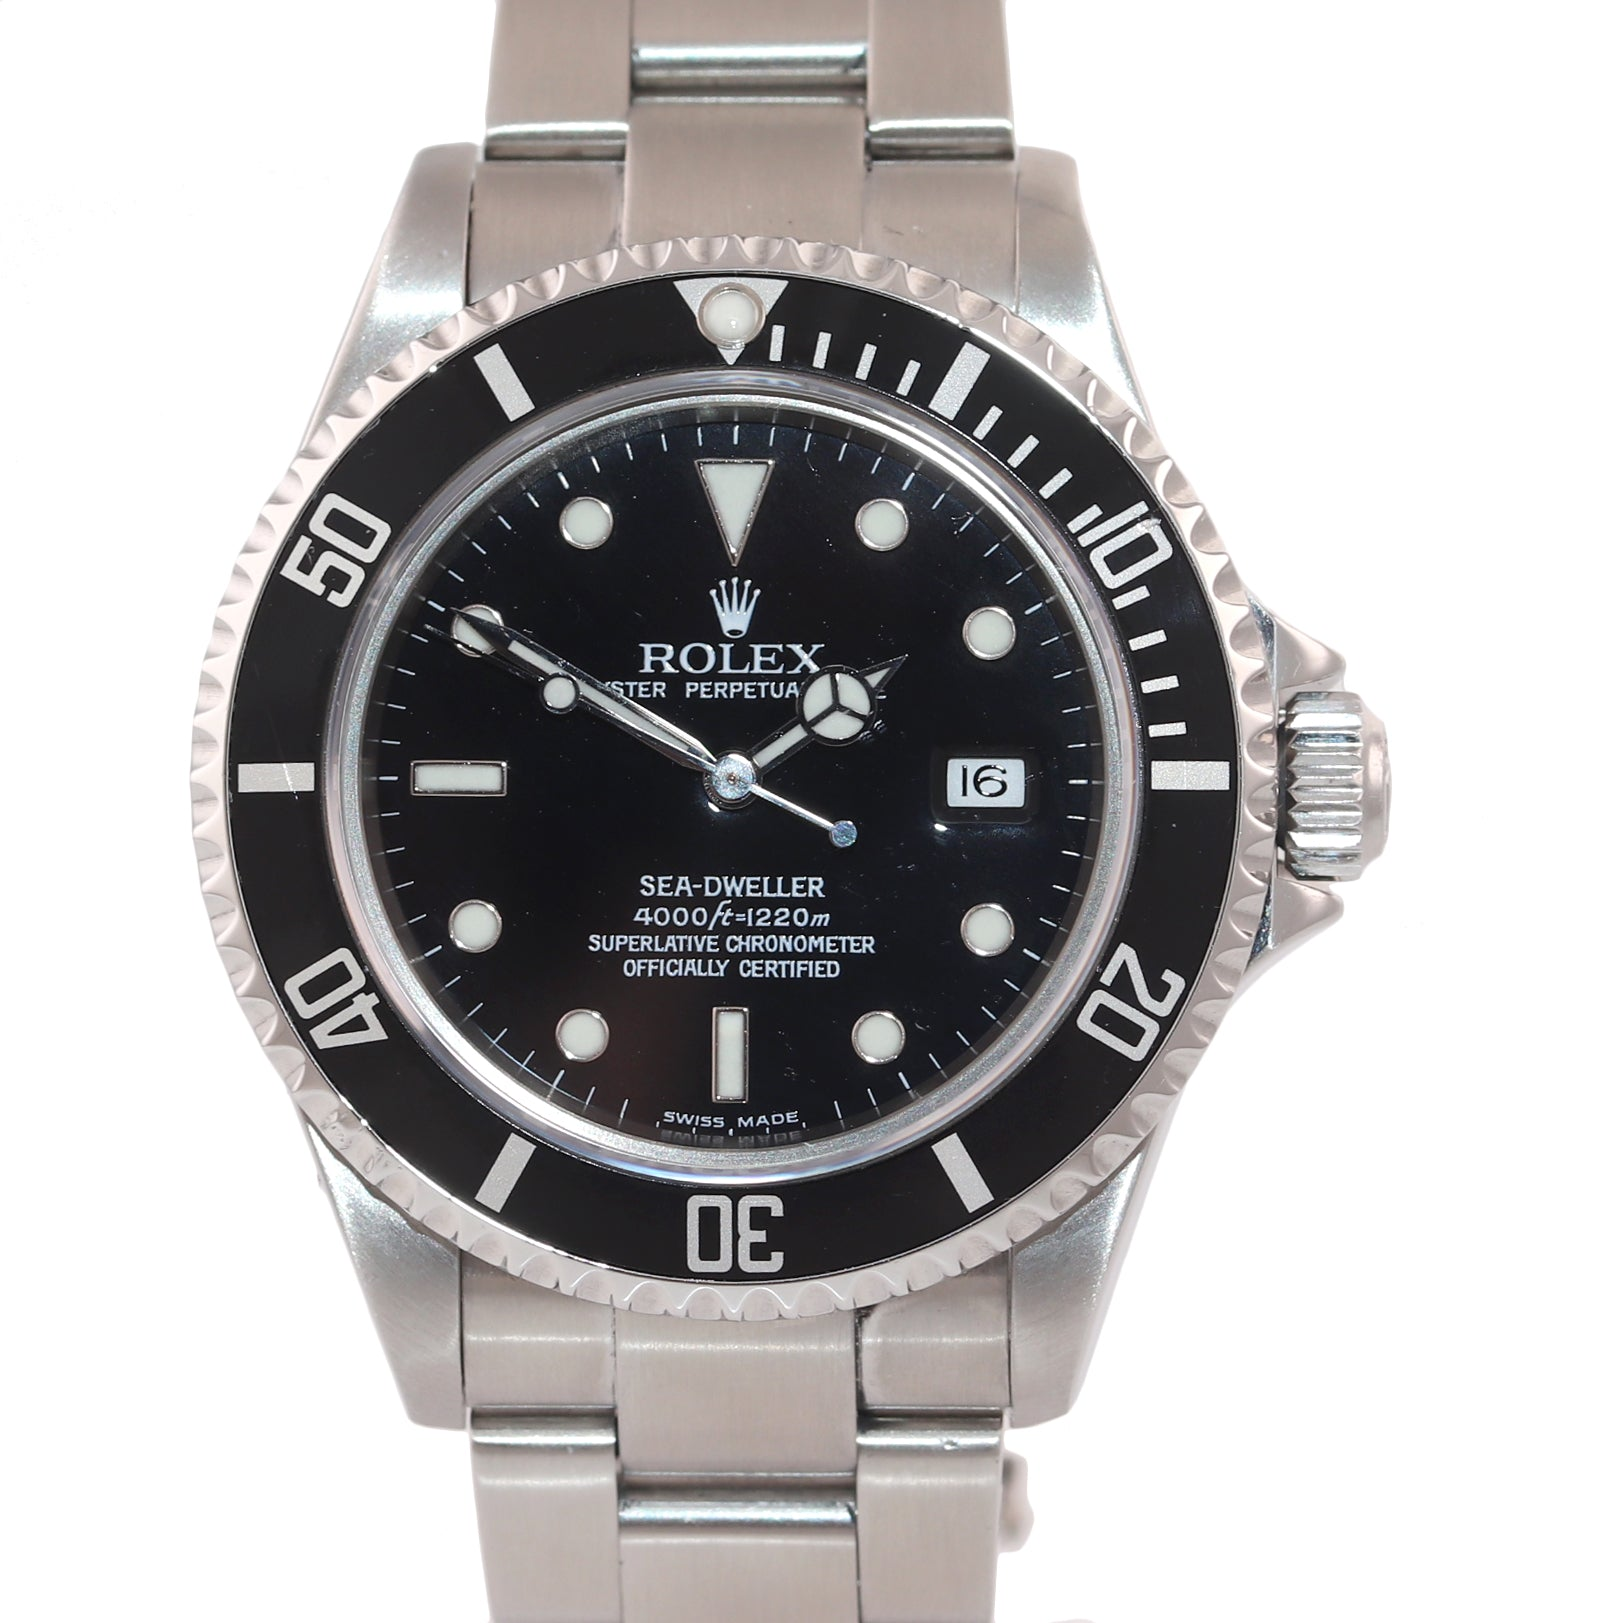 2005 PAPERS Rolex Sea-Dweller Steel Date 16600 40mm Date Black Diver Watch Box